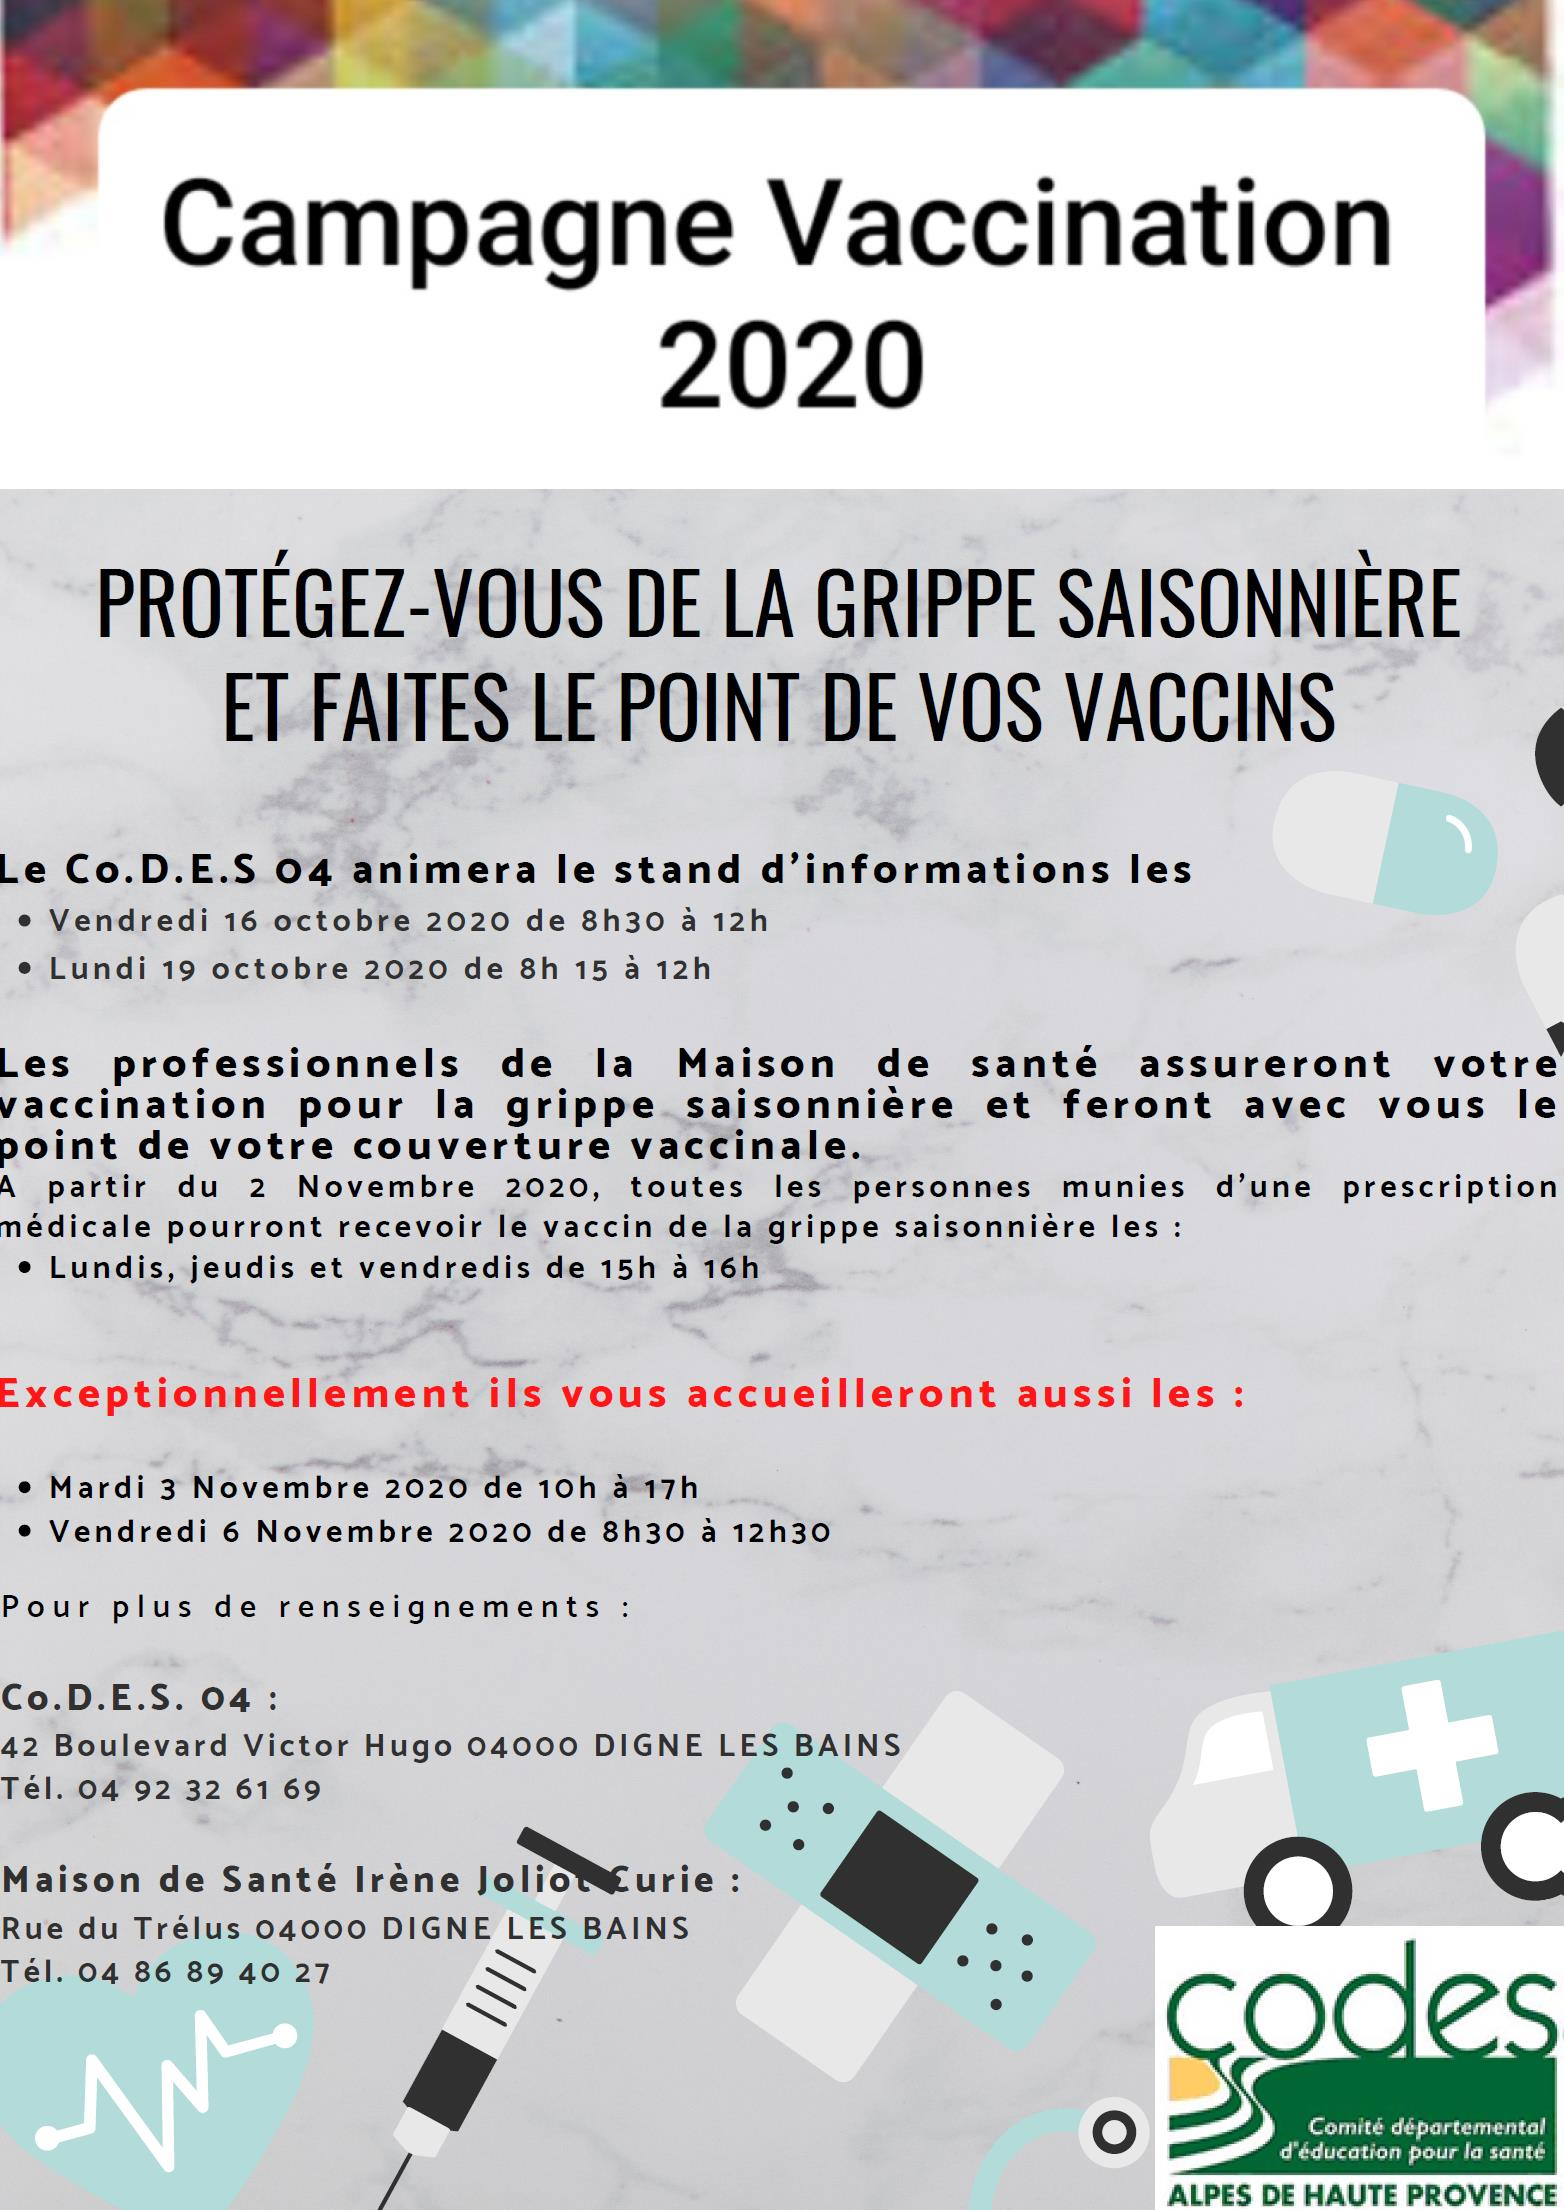 image affiche campagne vaccination 2020